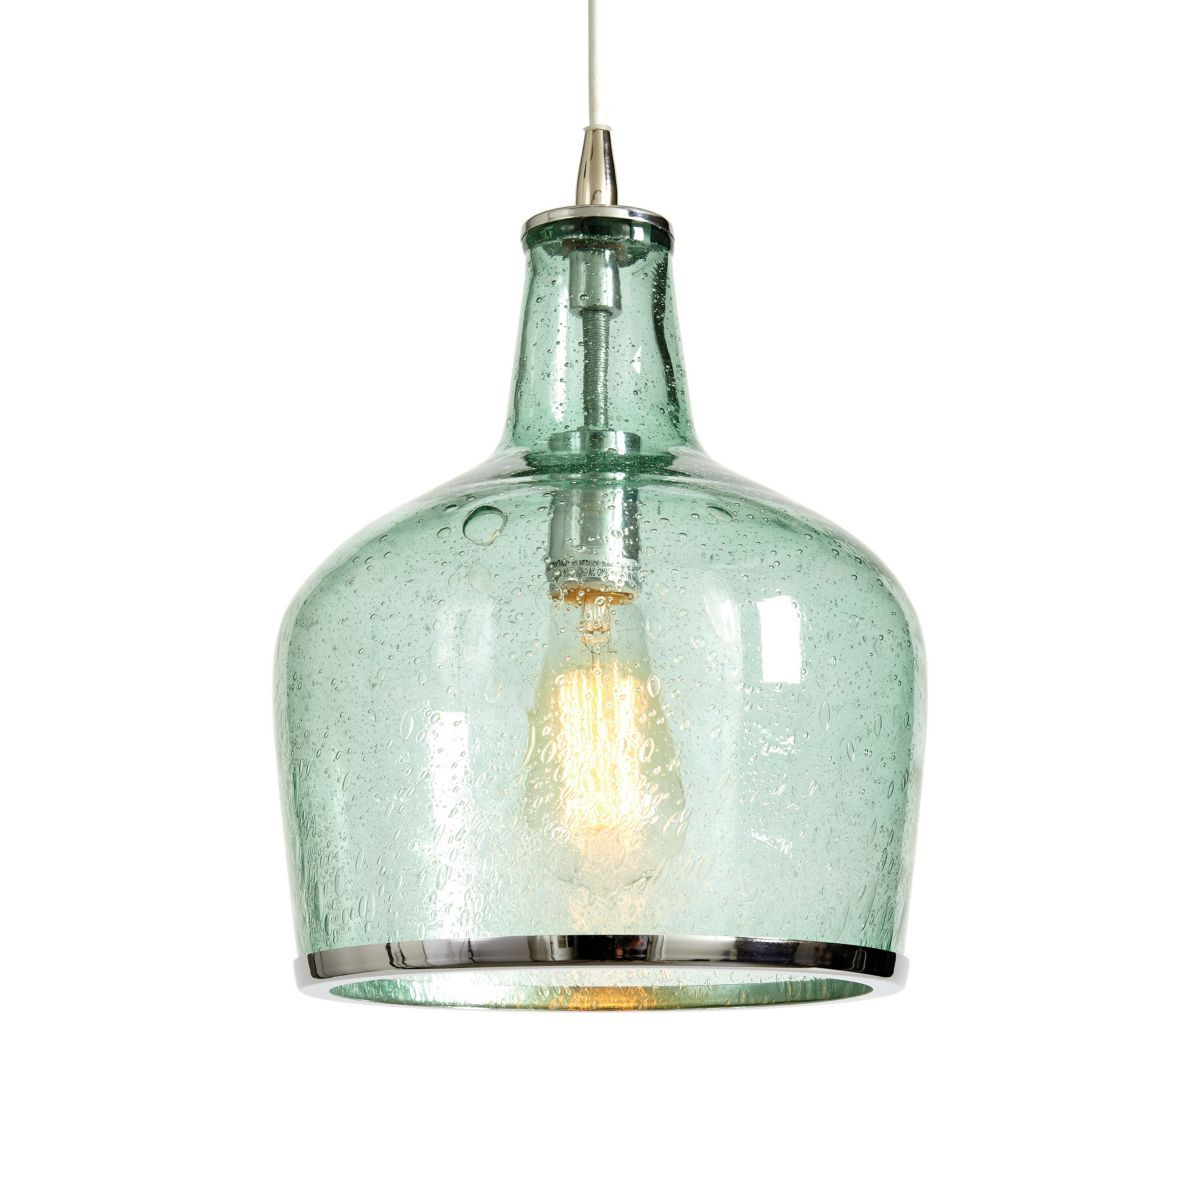 "Pendant Light Over Kitchen Sink: Addie Pendant Ballard 12x9 $189 Dimensions: Overall: 12""H"